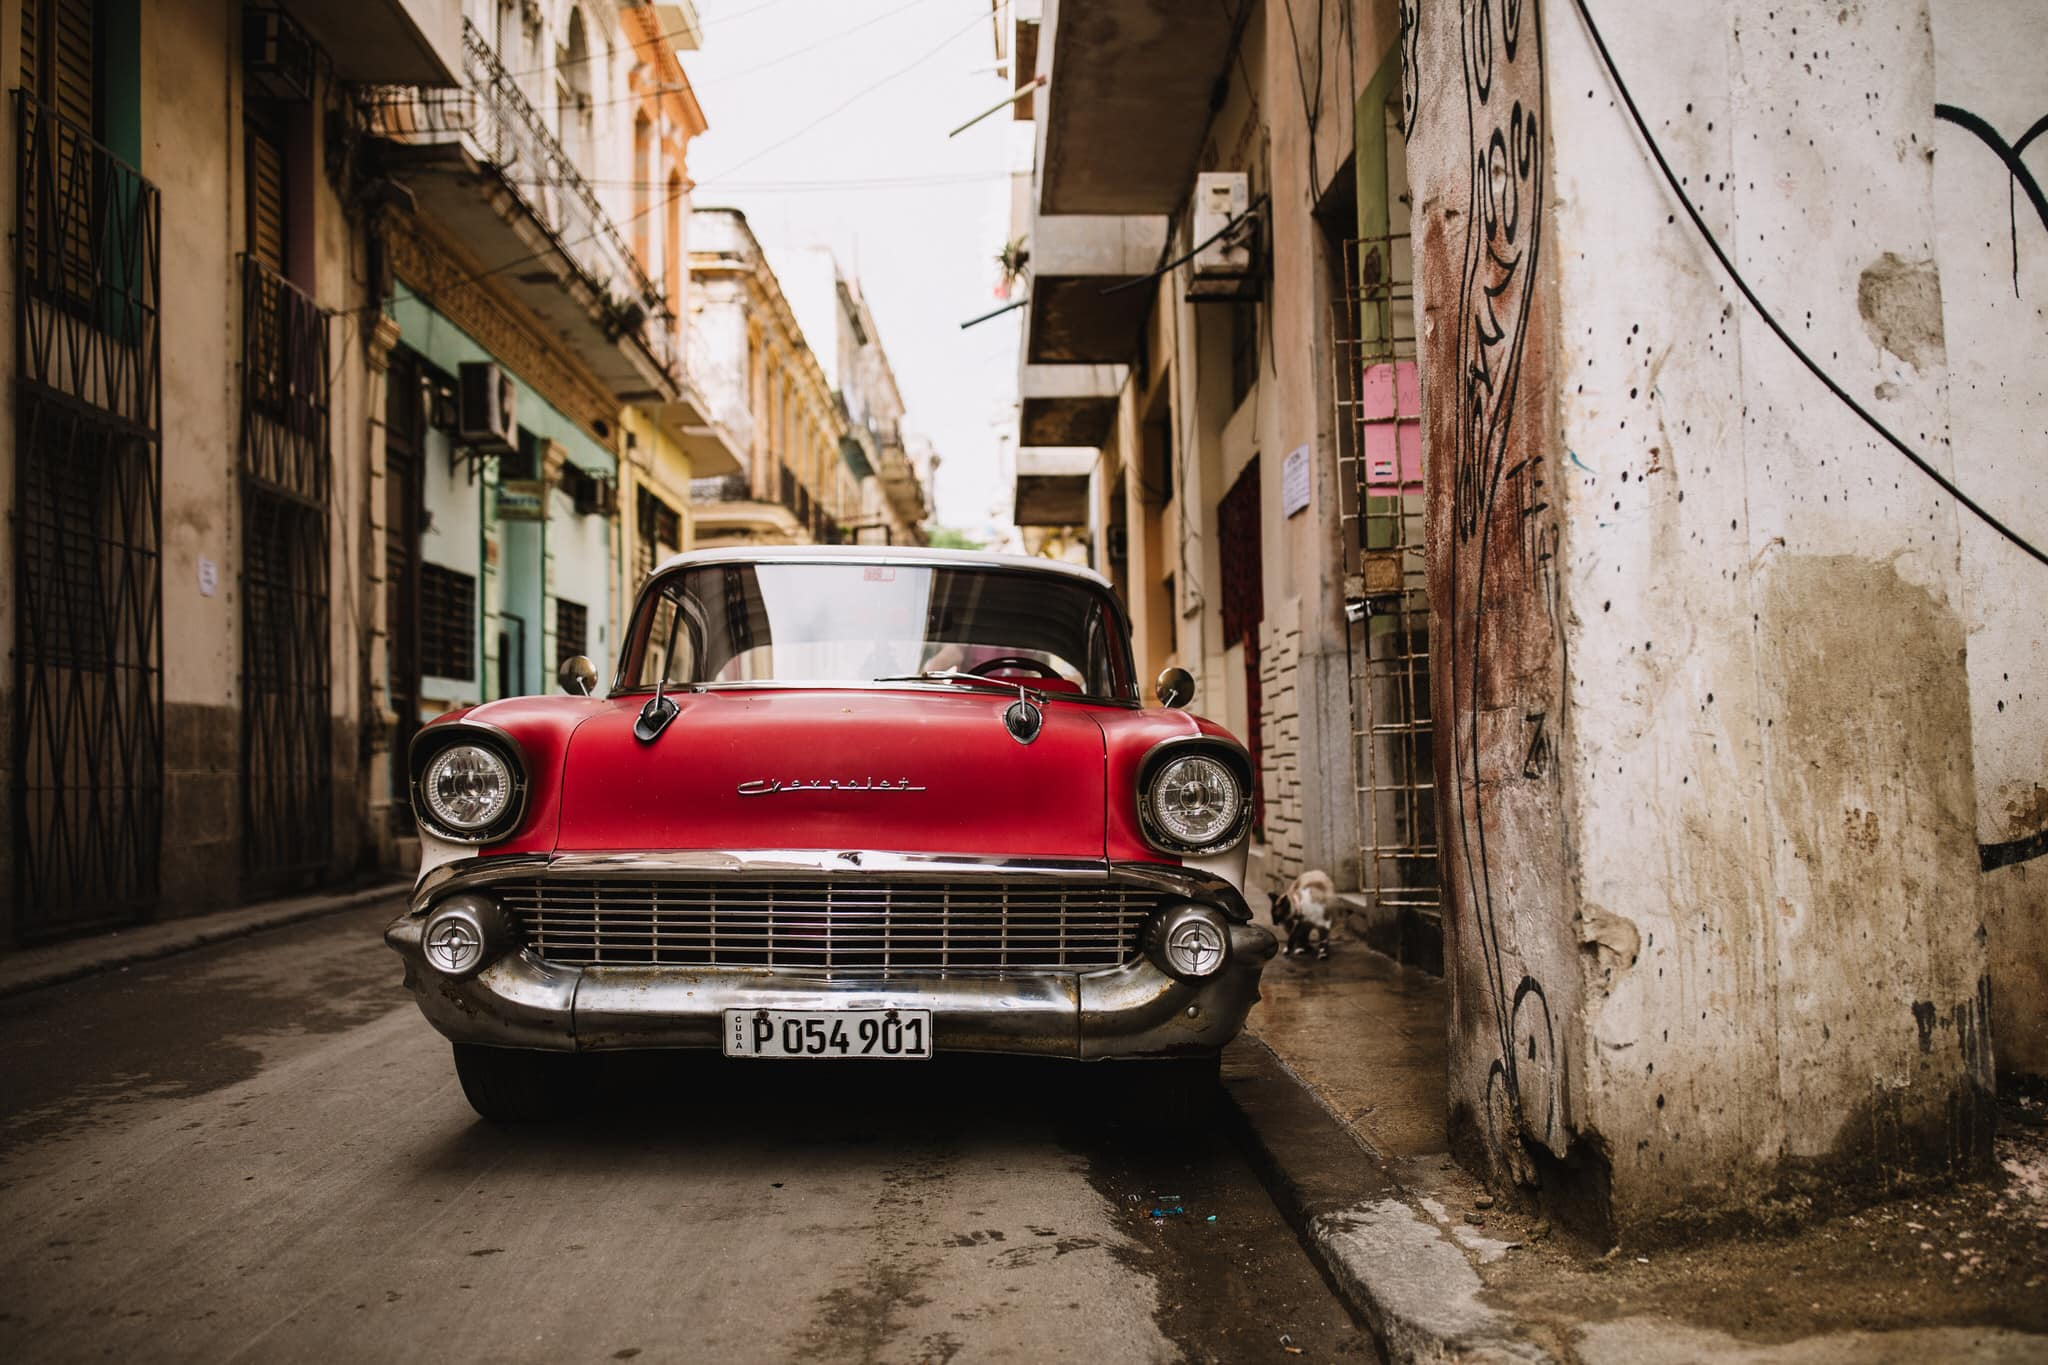 A red Chevrolet, one of the classic cars of cuba, near the Malecon in Havana. Travel photographer Brent Calis.